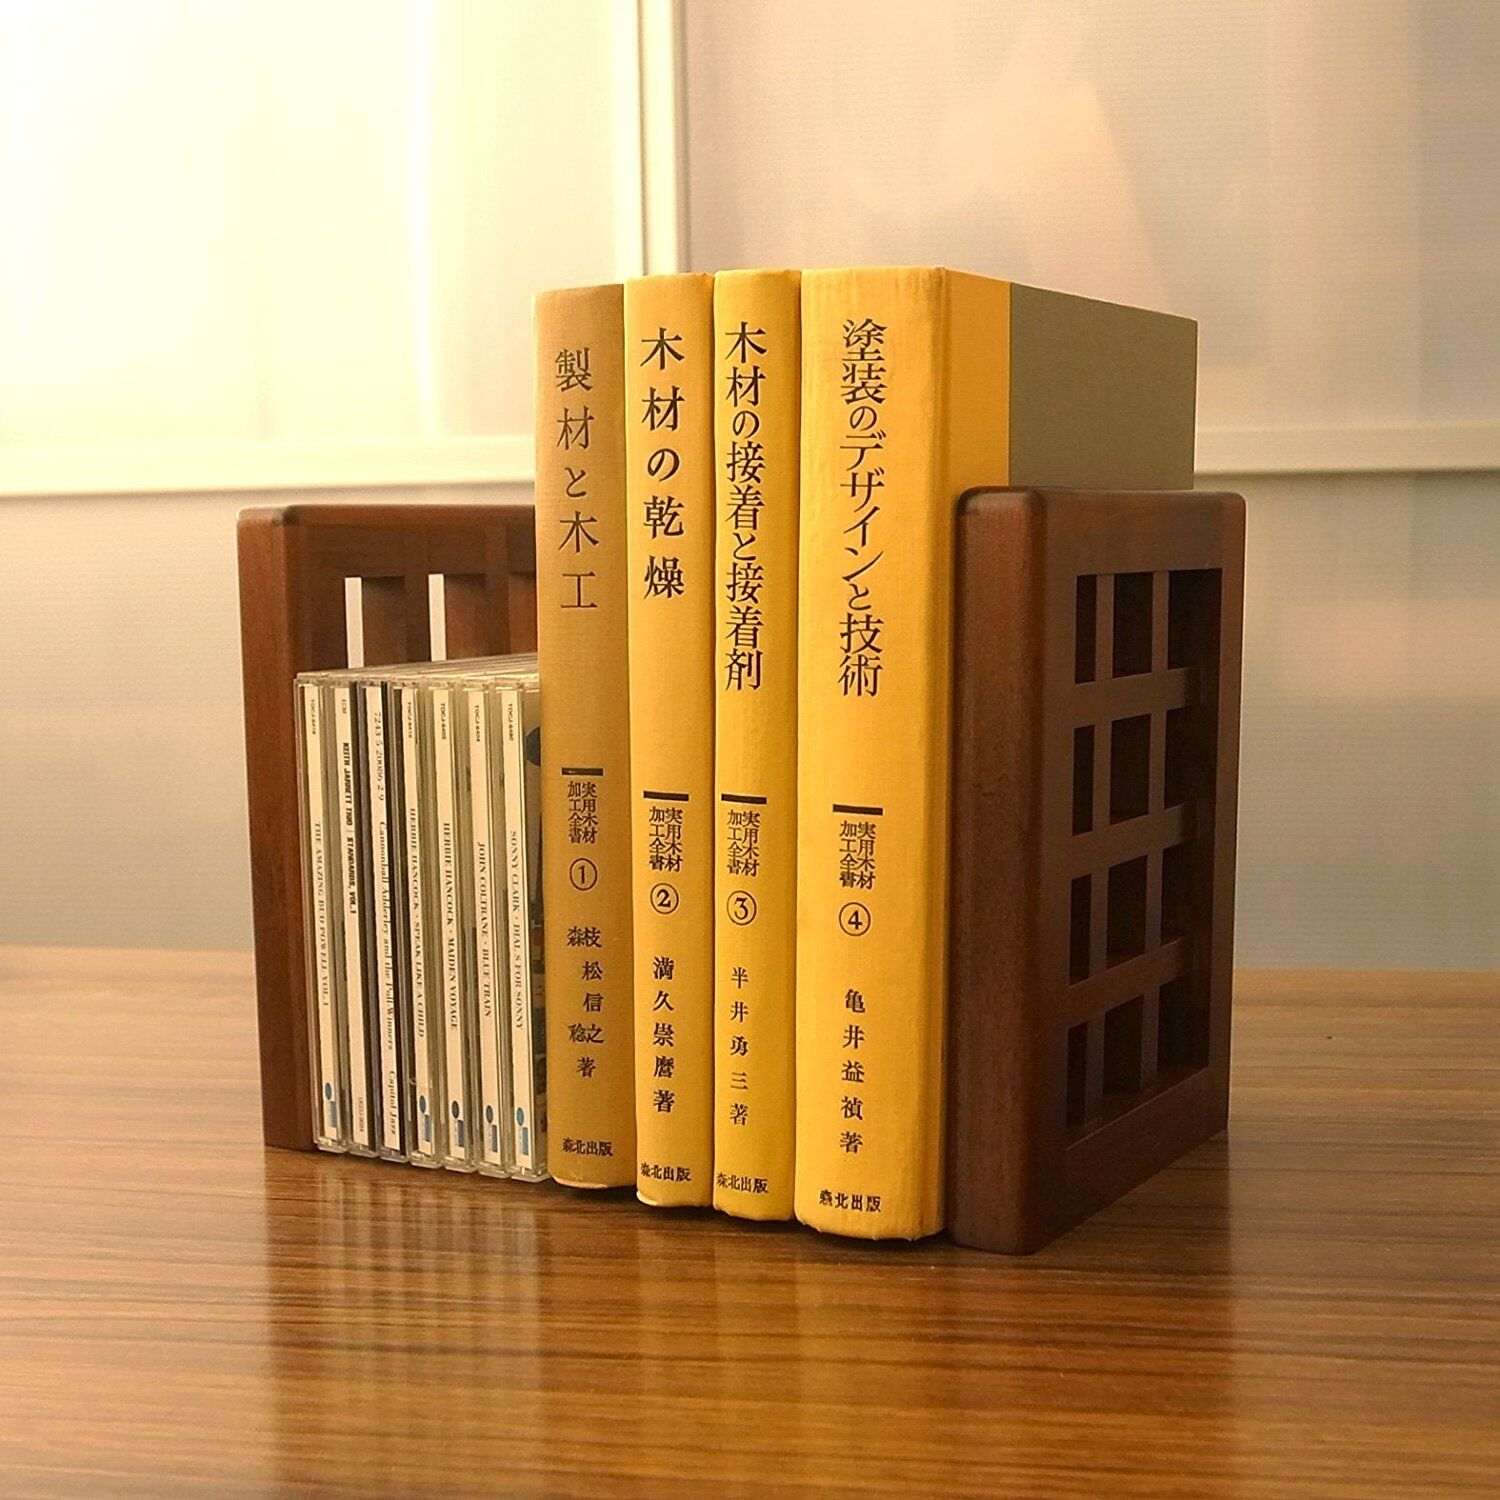 Wooden Collection Book End End End High Quality Made in Japan Toyooka bb779b